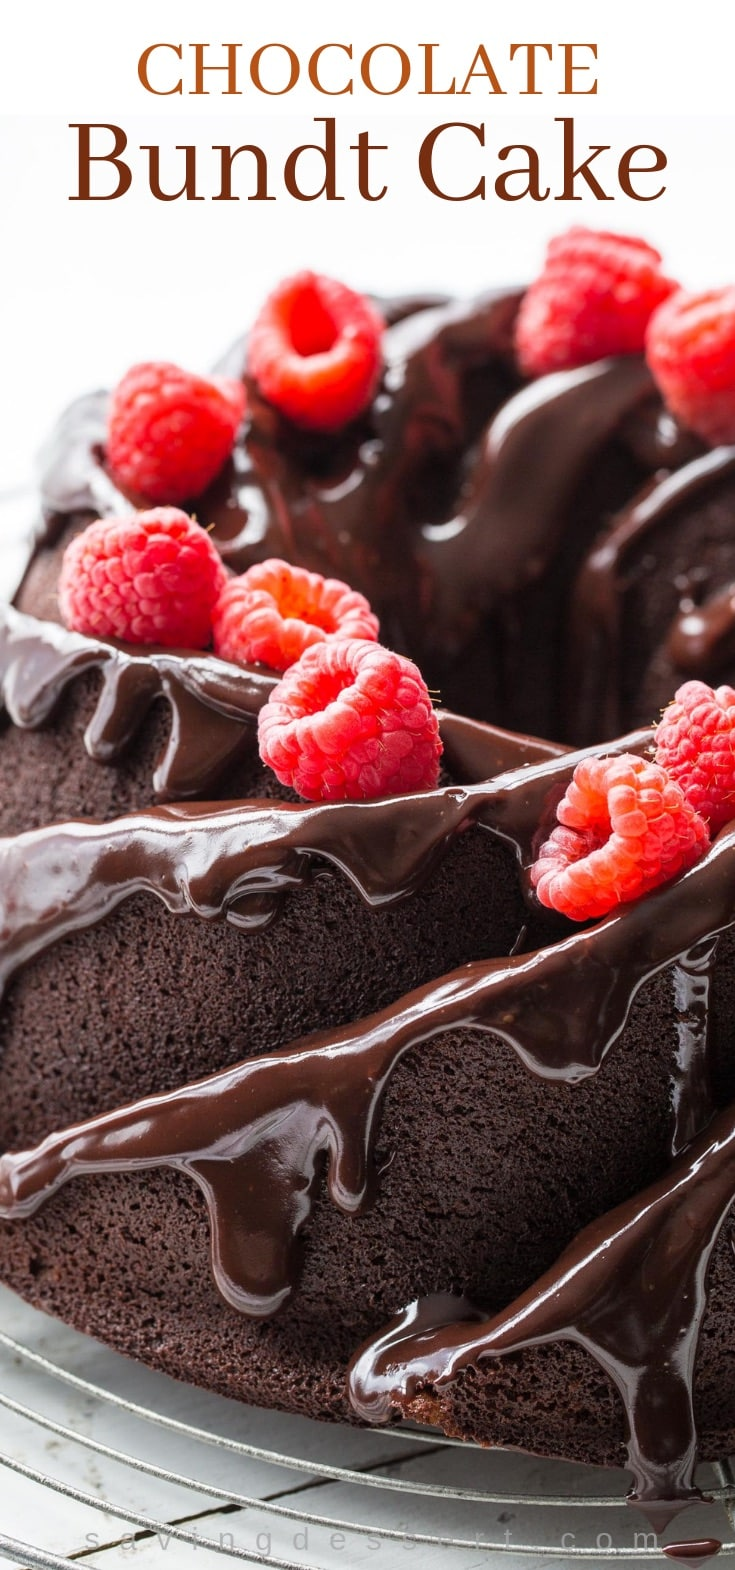 A rich chocolate bundt cake with a chocolate icing and fresh raspberries